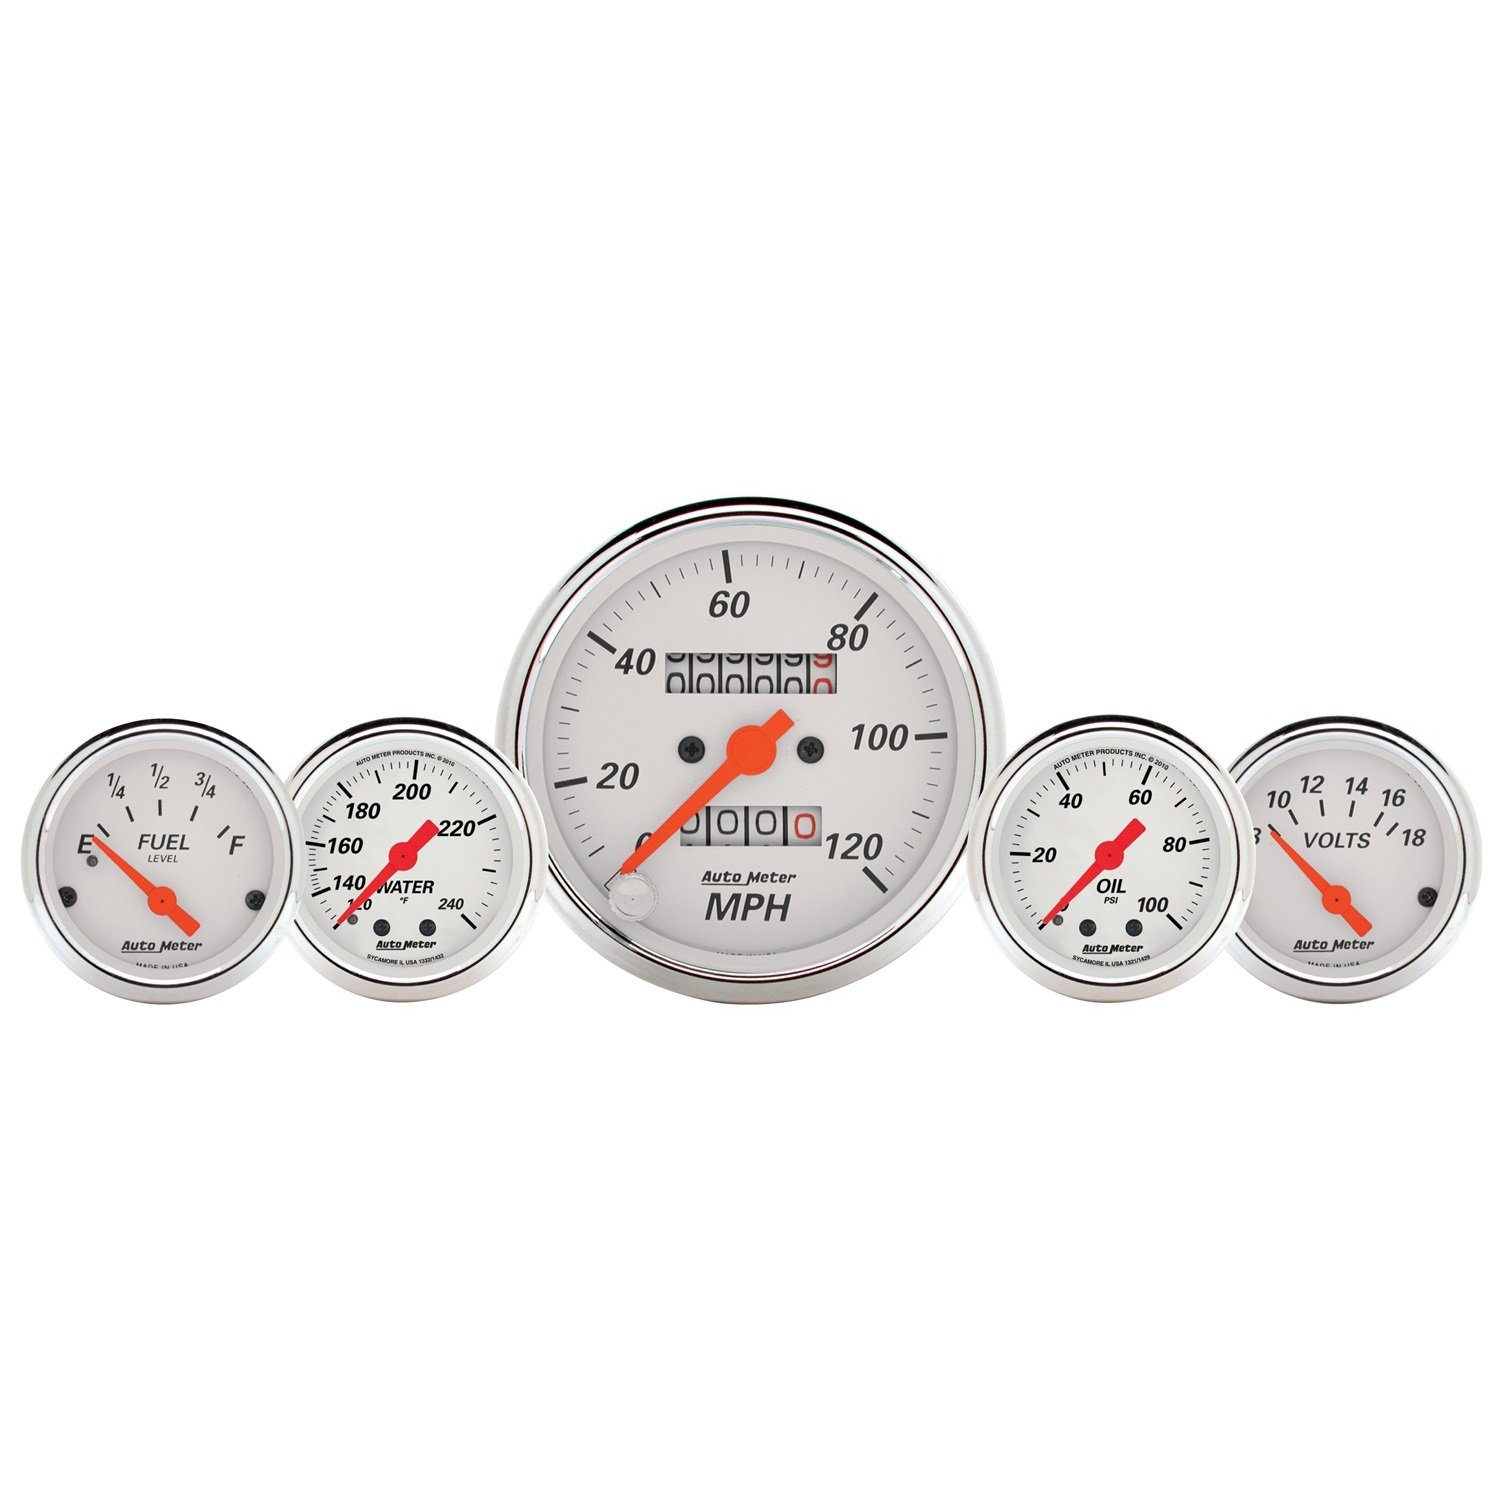 Auto Meter 1311 Arctic White Fuel/Oil/Speedo/Volt/Water 5 Gauge Set